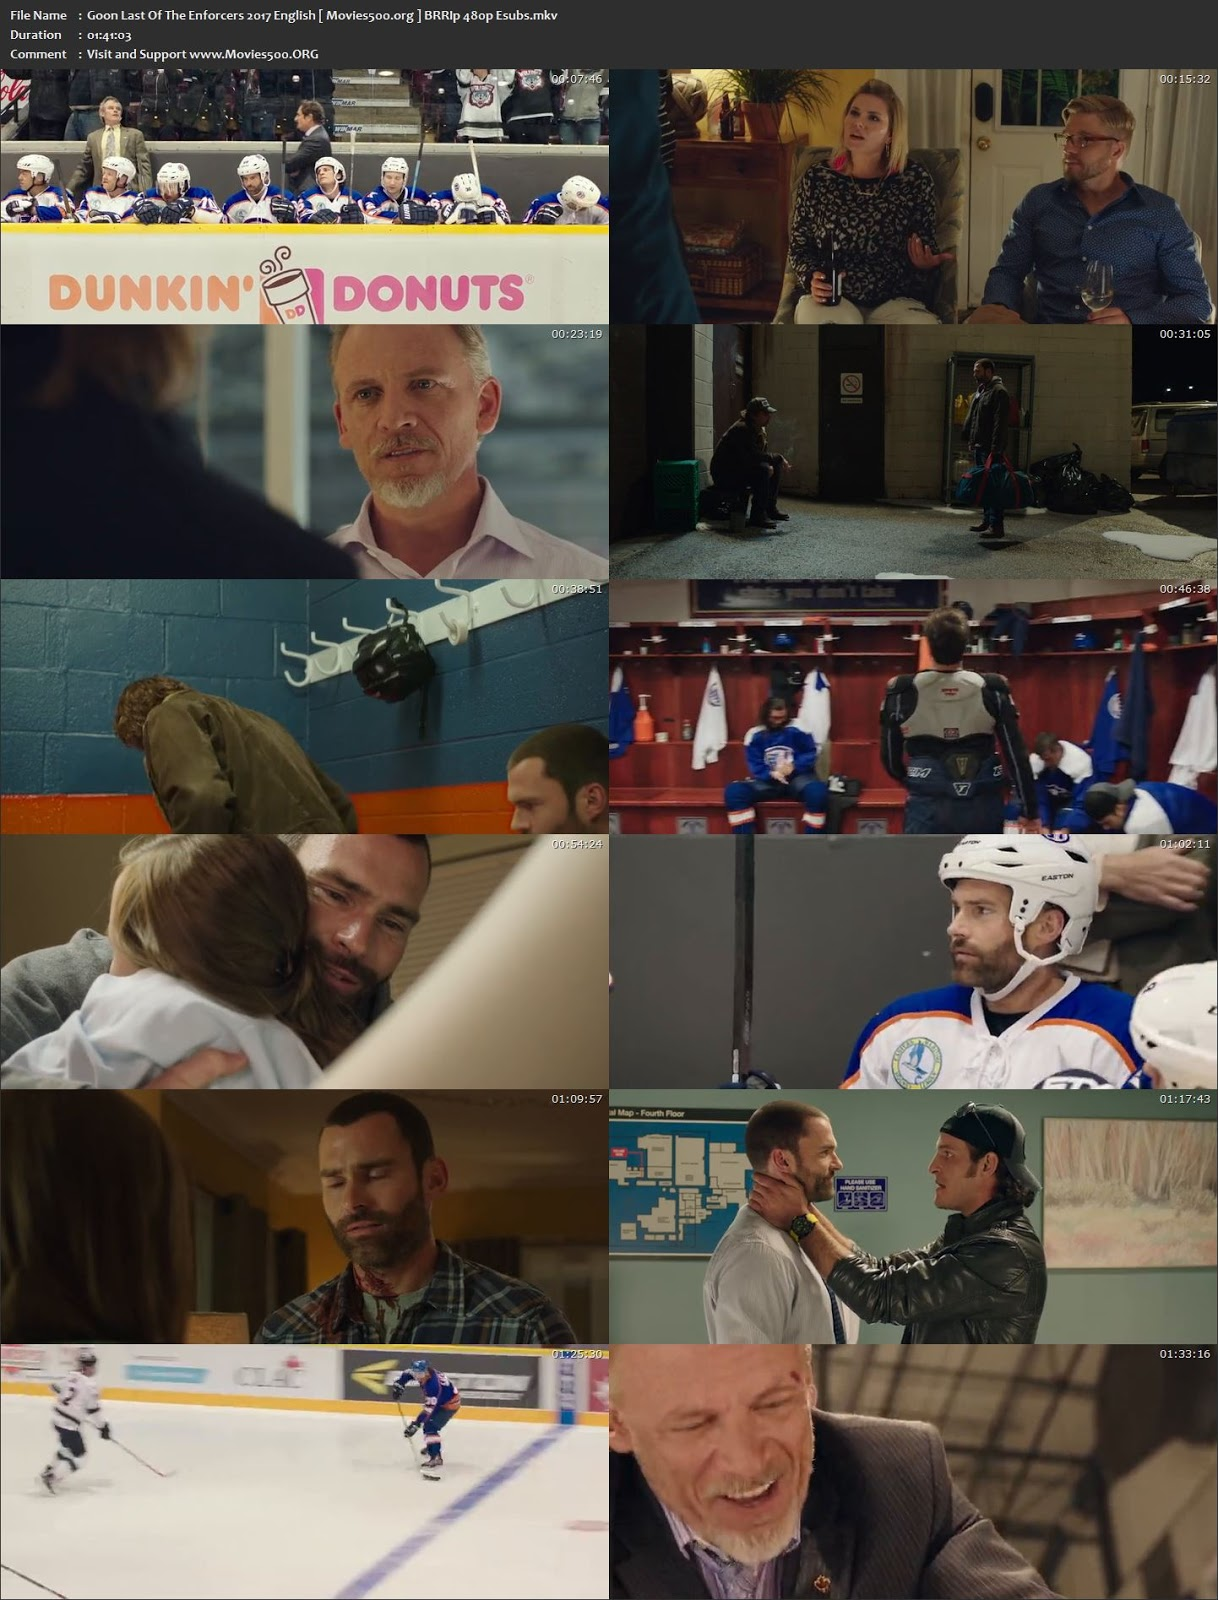 Goon Last of the Enforcers 2017 Hollywood 300MB BluRay 480p at movies500.info